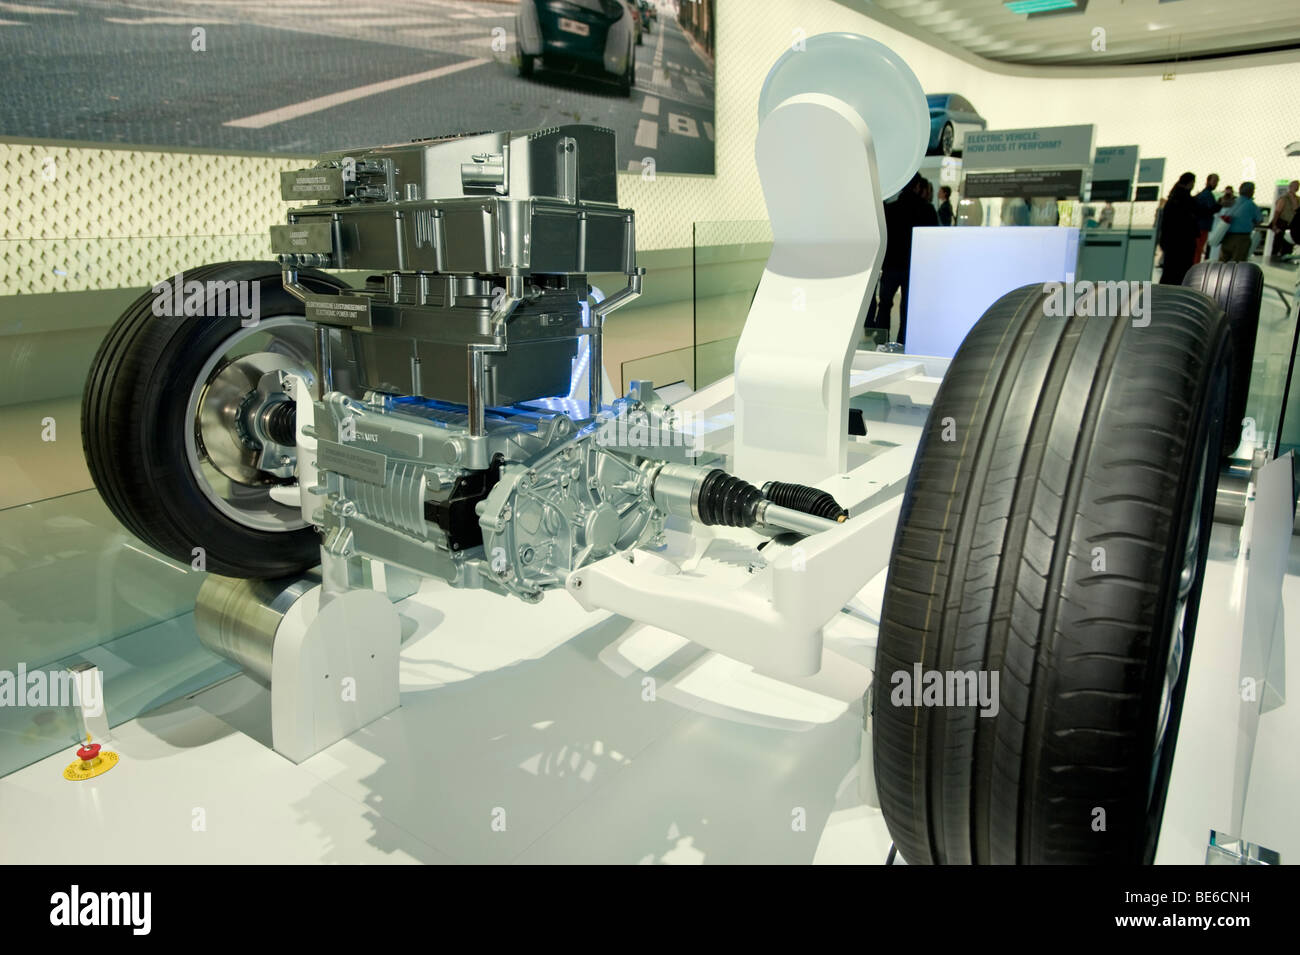 Demonstration model of new electric engine and chassis designed by Renault at the Frankfurt Motor Show 2009 - Stock Image